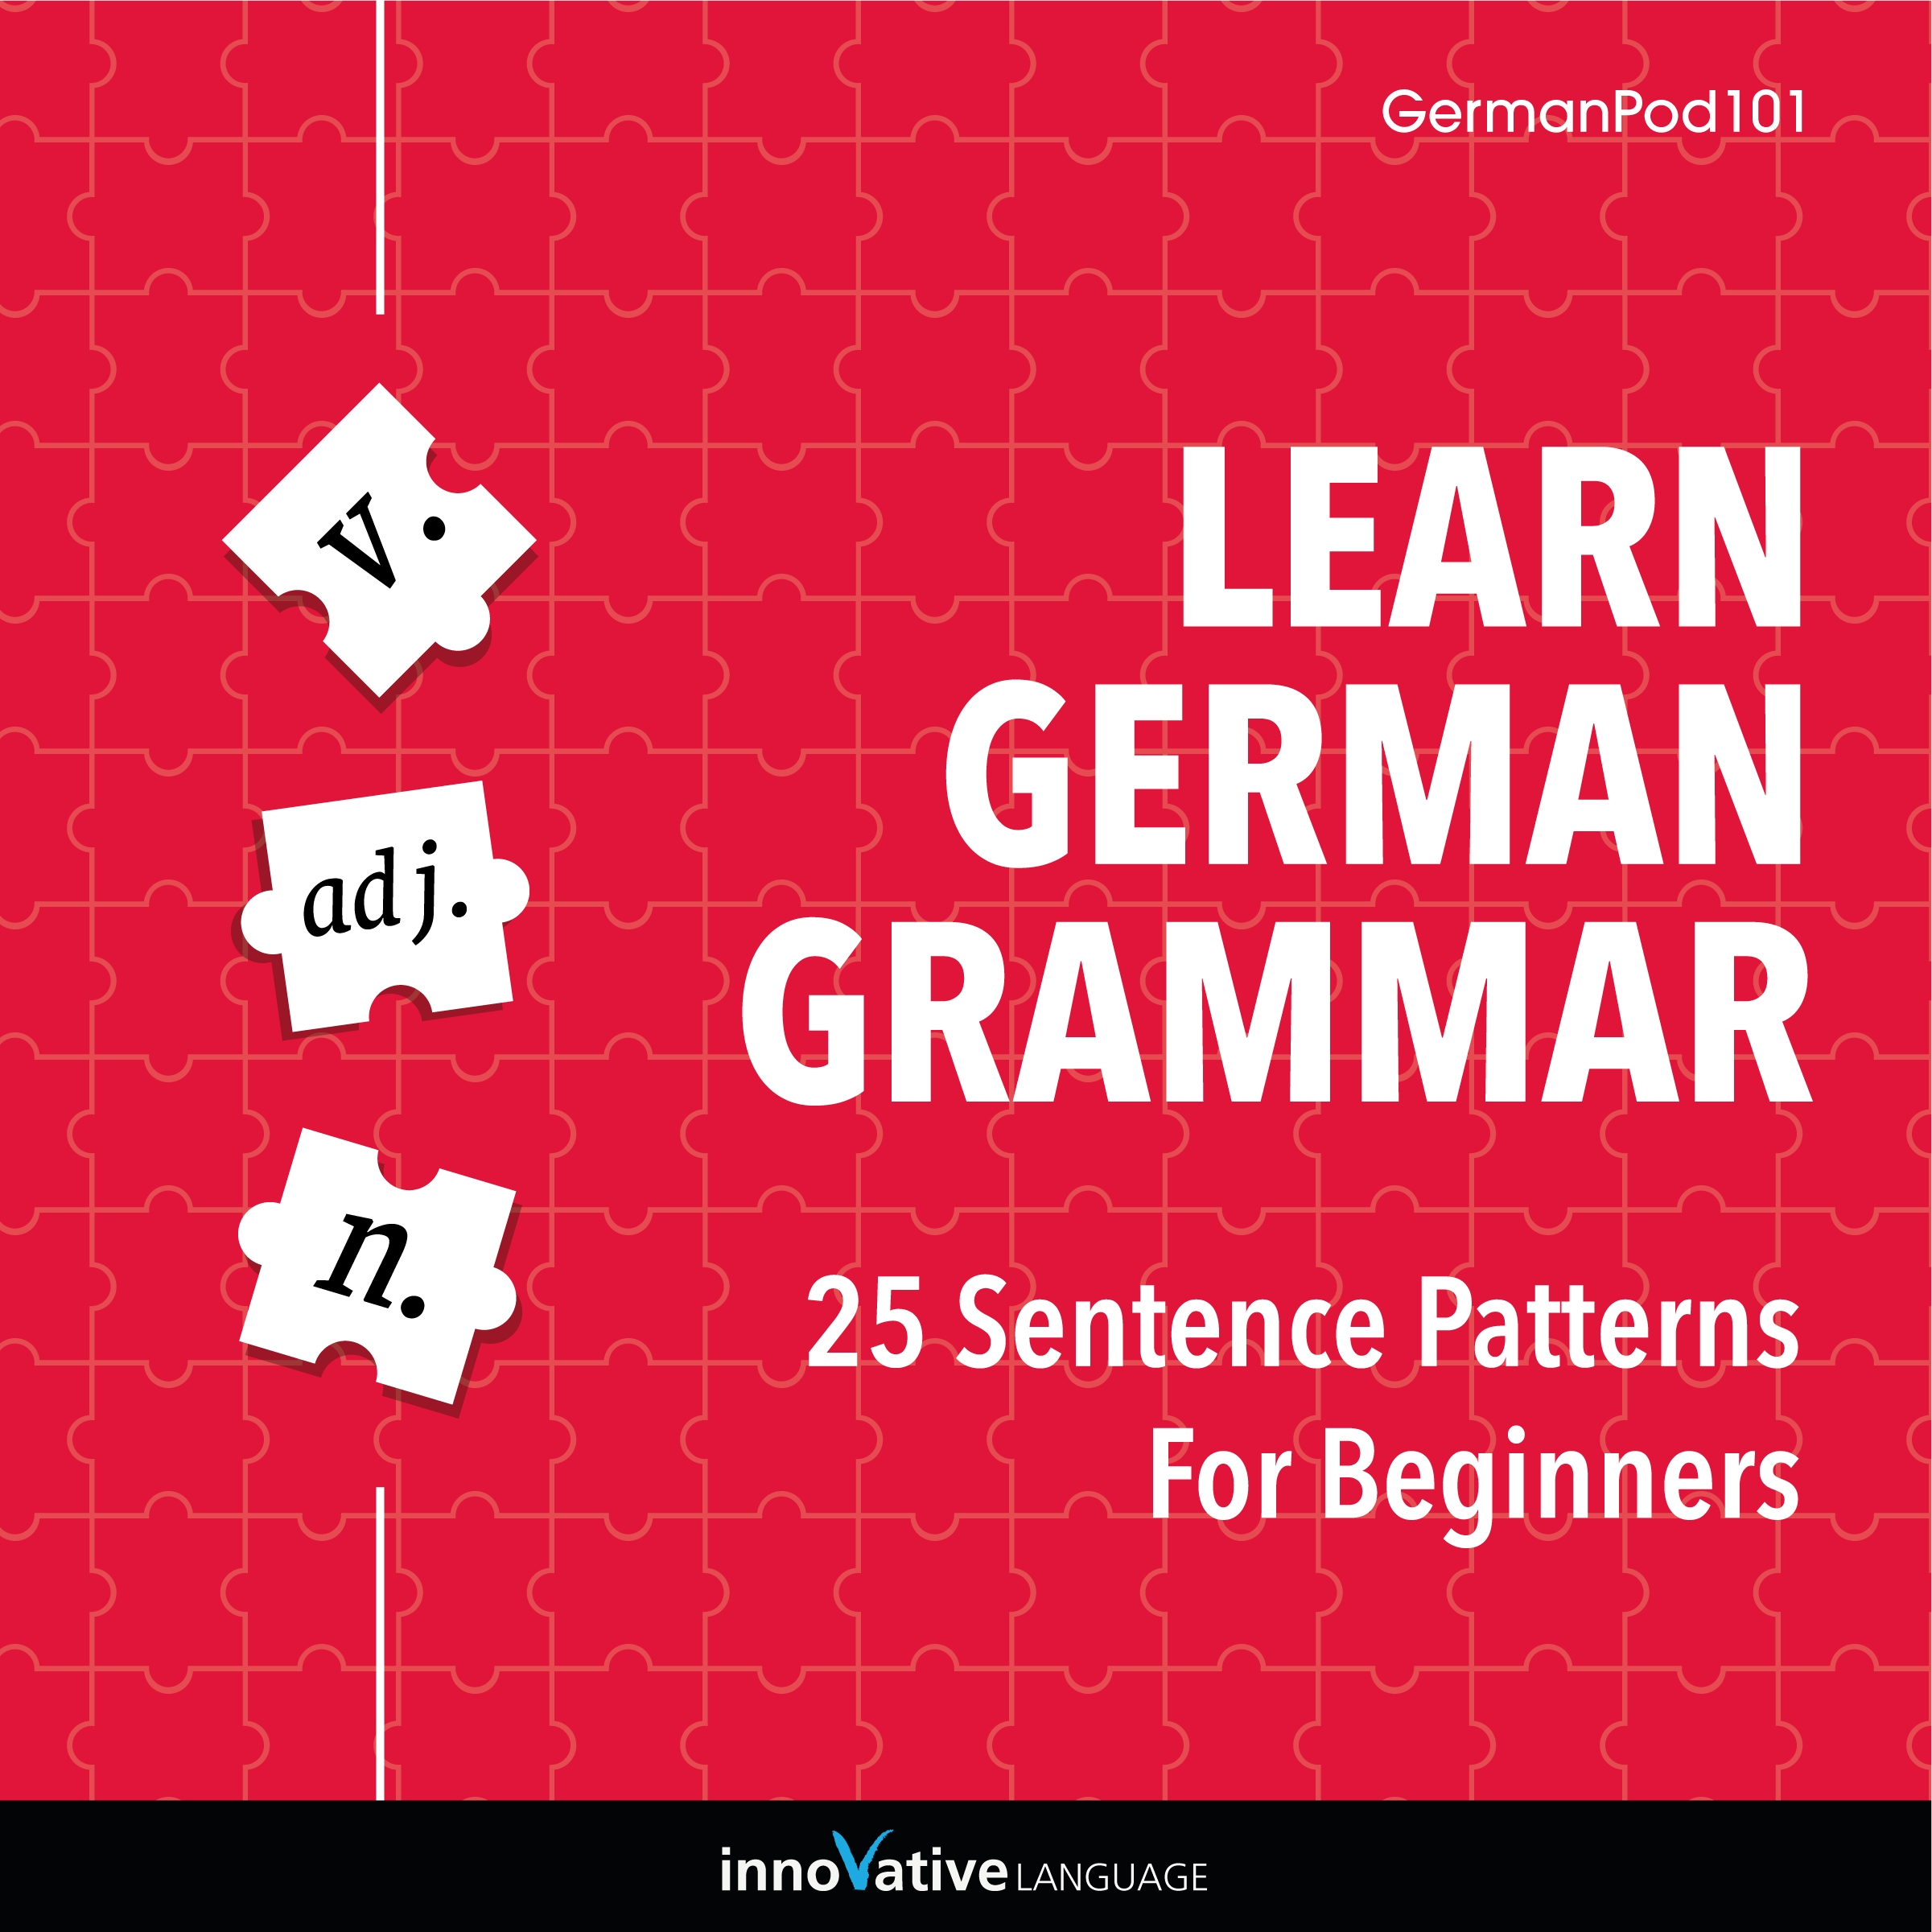 [Audiobook] Learn German Grammar: 25 Sentence Patterns for Beginners